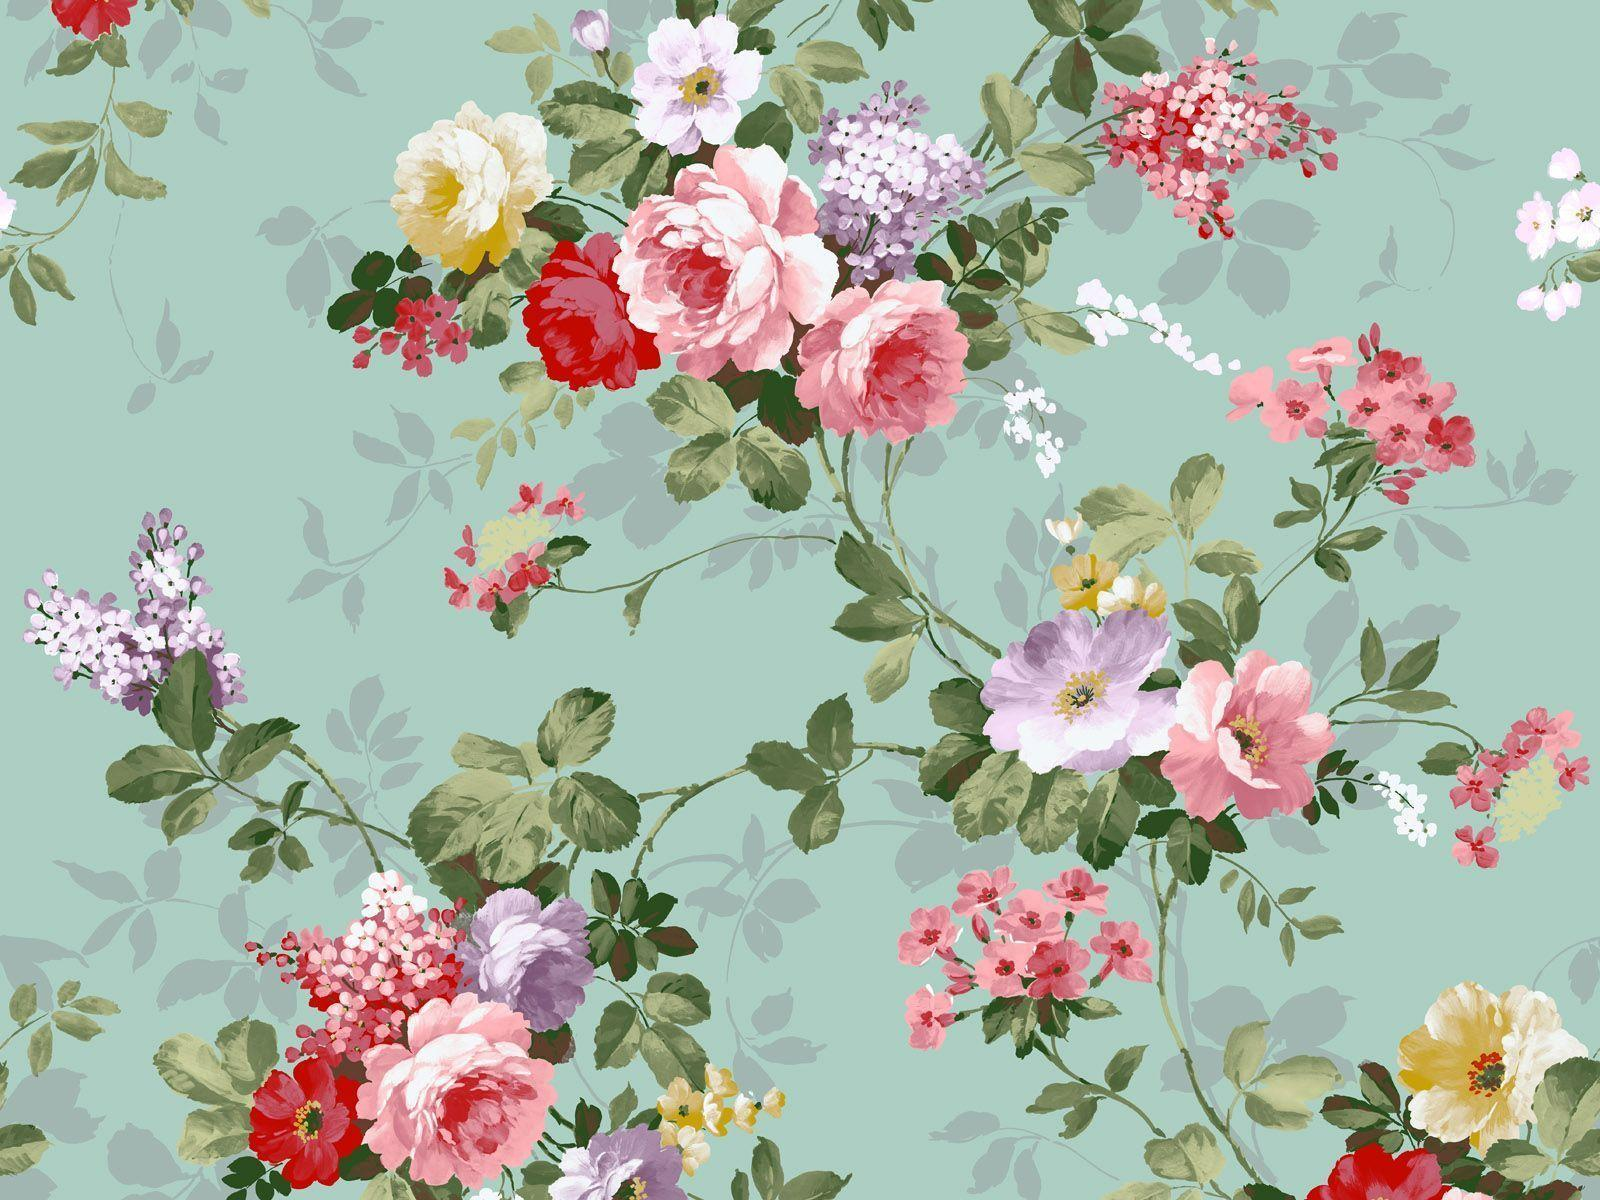 Floral Tumblr Desktop Wallpapers Top Free Floral Tumblr Desktop